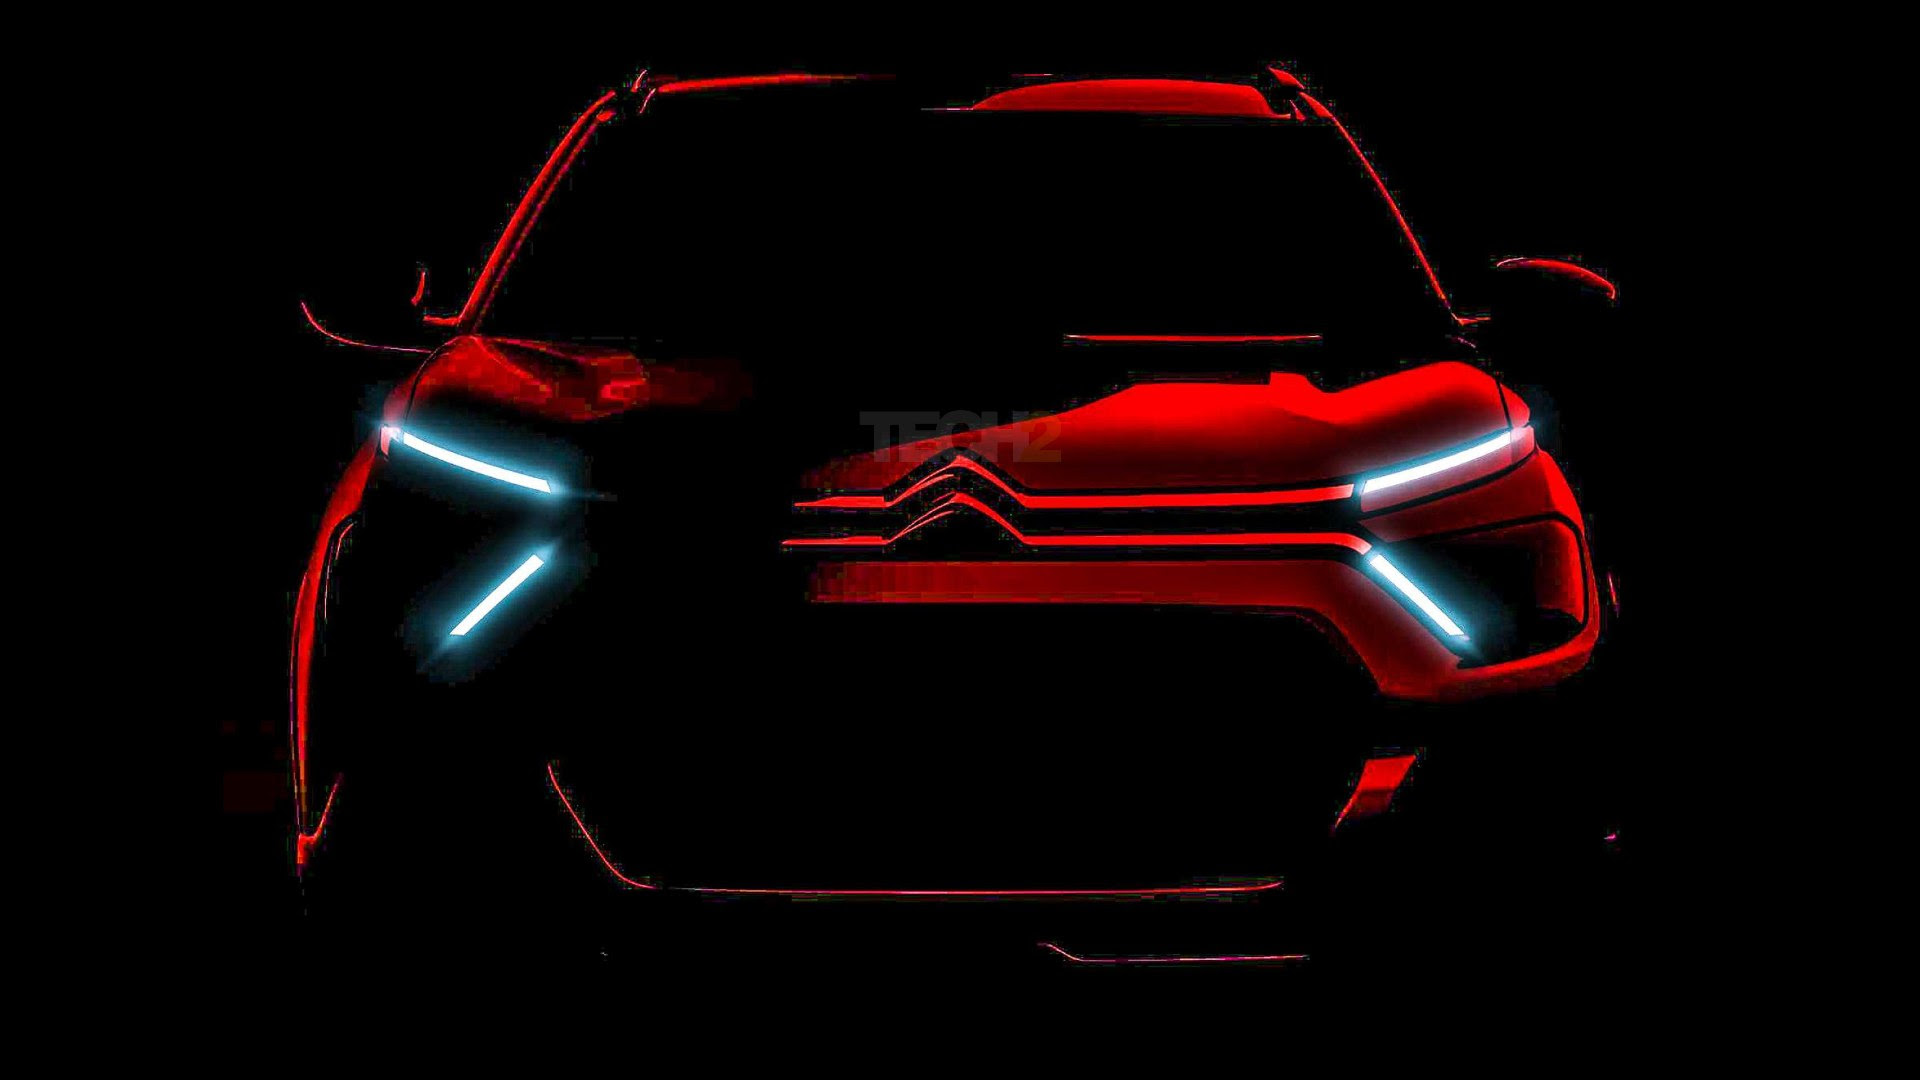 Chrome extensions emerging from iconic double chevron flow into the thin, X-shaped LED daytime running lights. Image: Citroen